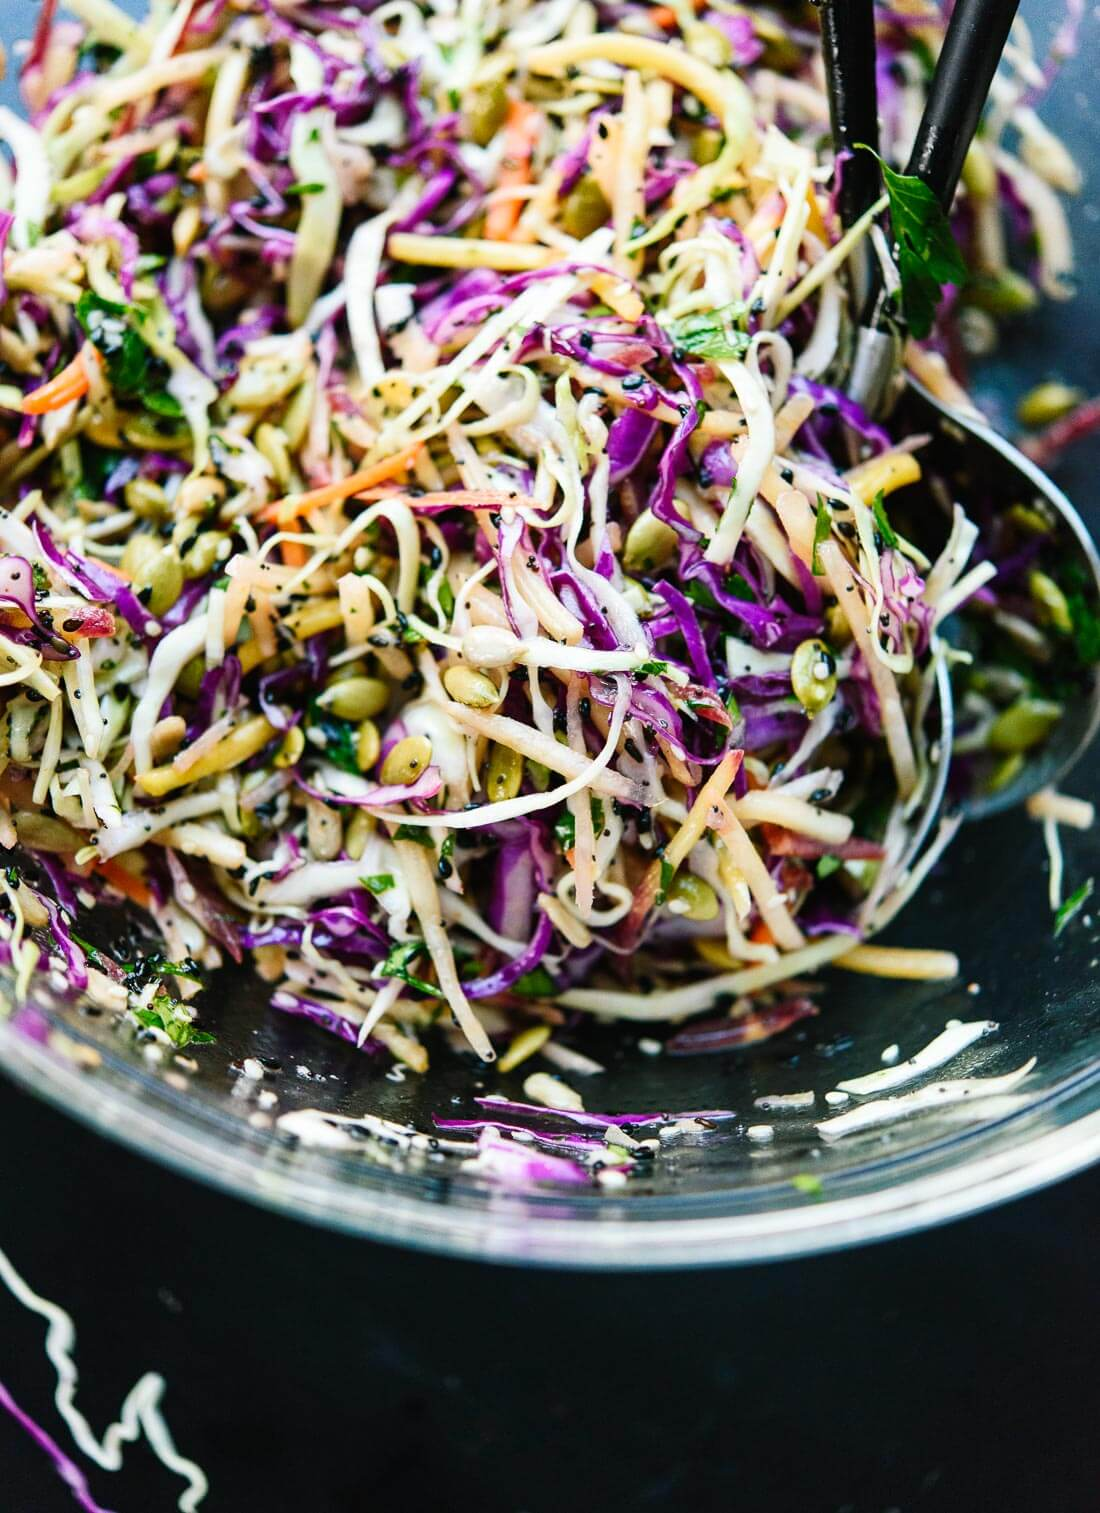 Healthy coleslaw recipe with sunflower and pumpkin seeds - cookieandkate.com